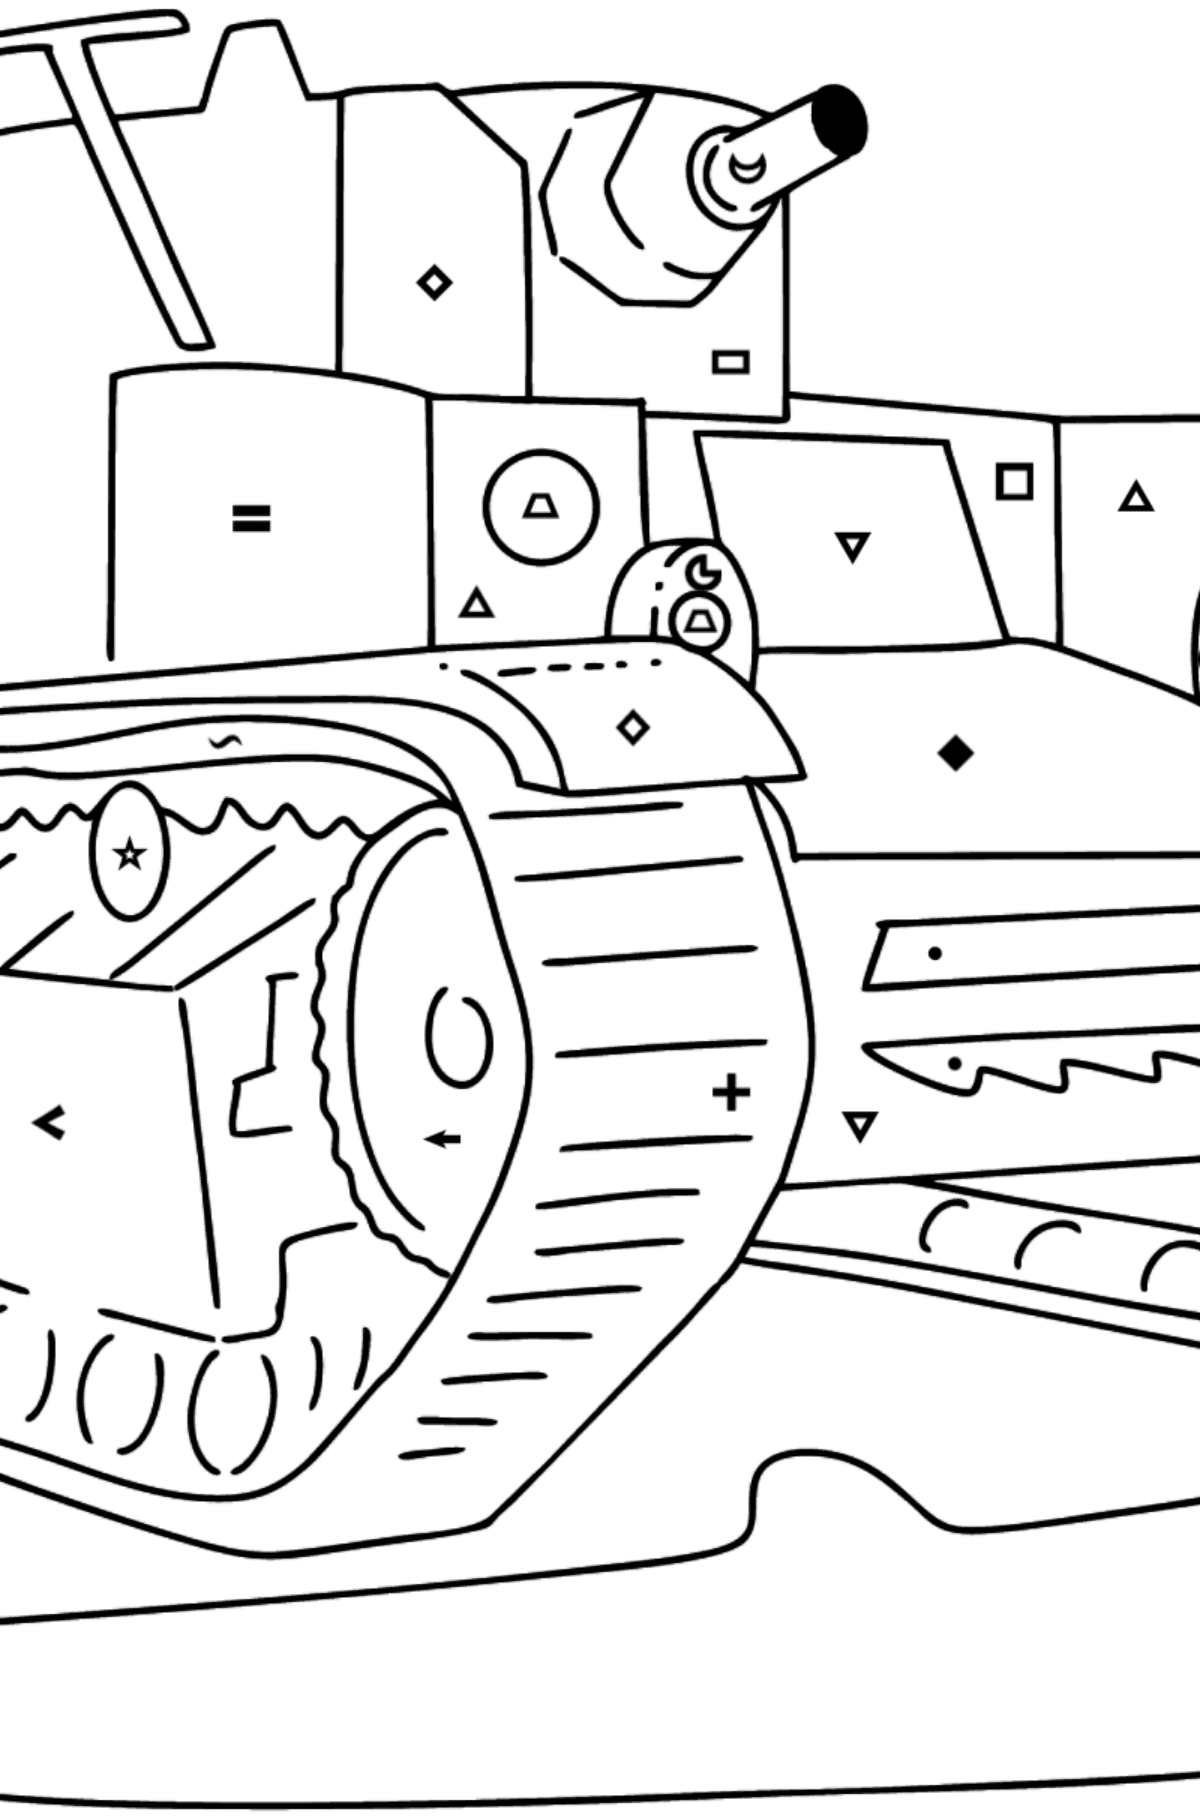 Tank T 28 coloring page - Coloring by Symbols and Geometric Shapes for Kids